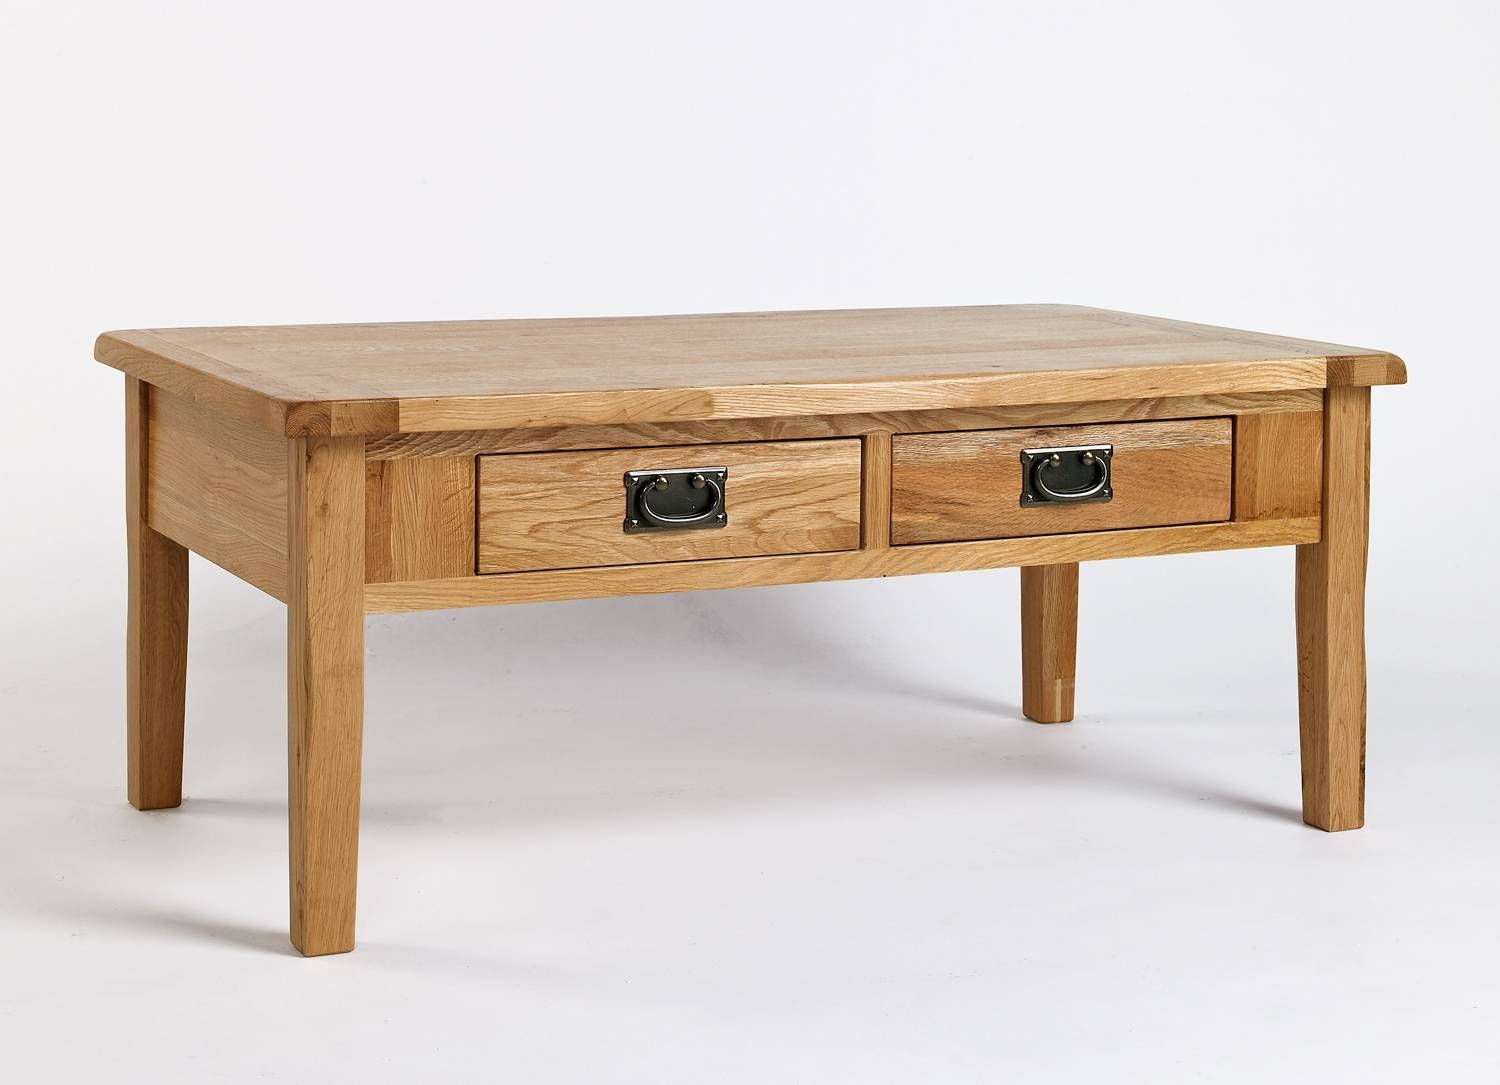 Westbury Reclaimed Oak Coffee Table With 4 Drawers. 50% Off! with regard to Oak Coffee Table With Drawers (Image 15 of 15)